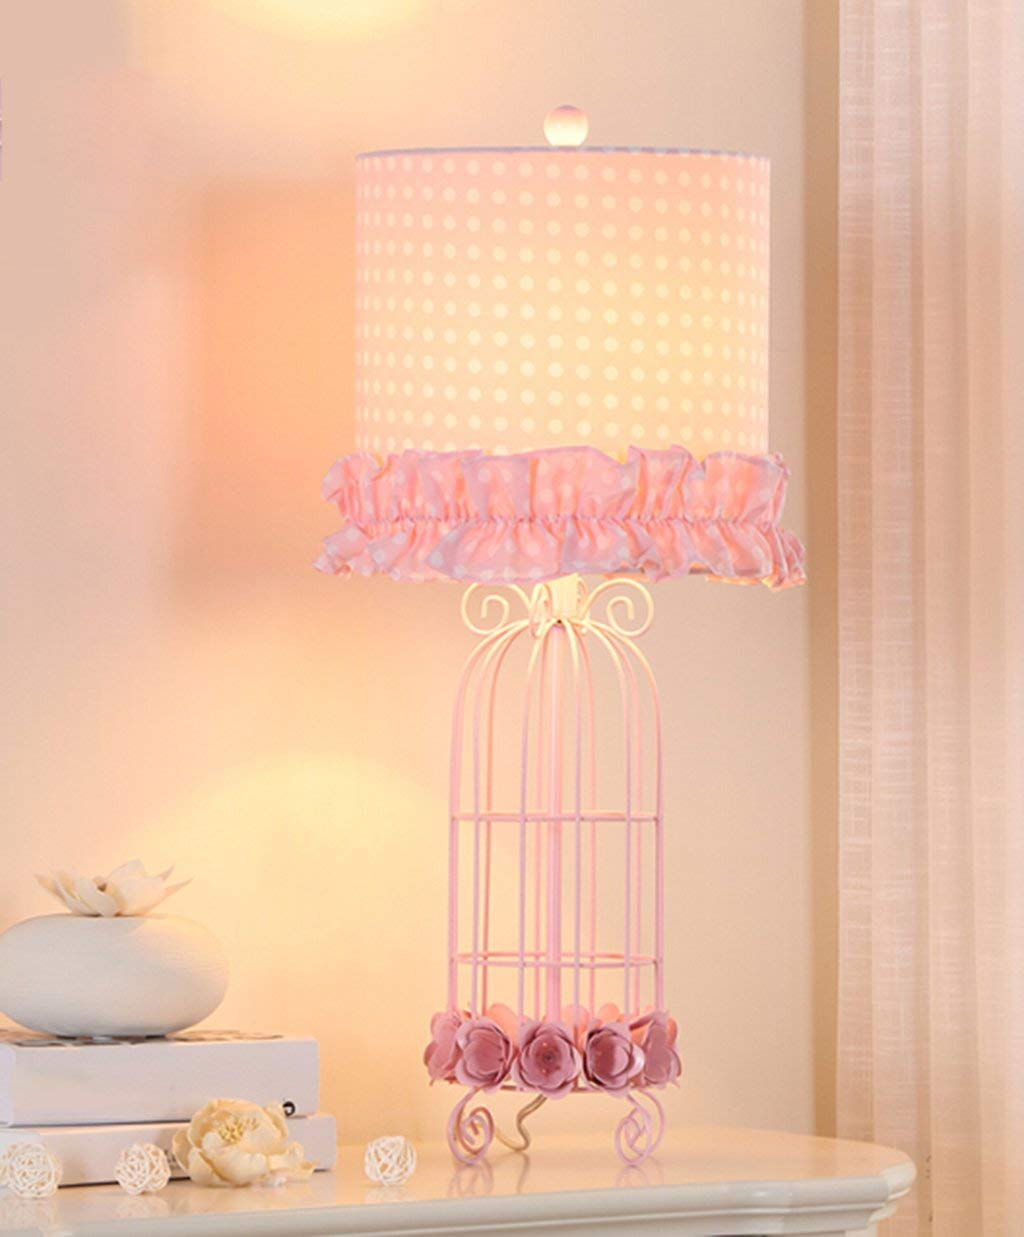 Hjer Creative Bedroom Lamp Bedside Counter Lamp Modern Wrought Iron Bird Cage Creative Simple And Warm Cute Girl Princess Bedside Lamp 6417.5Cm E27